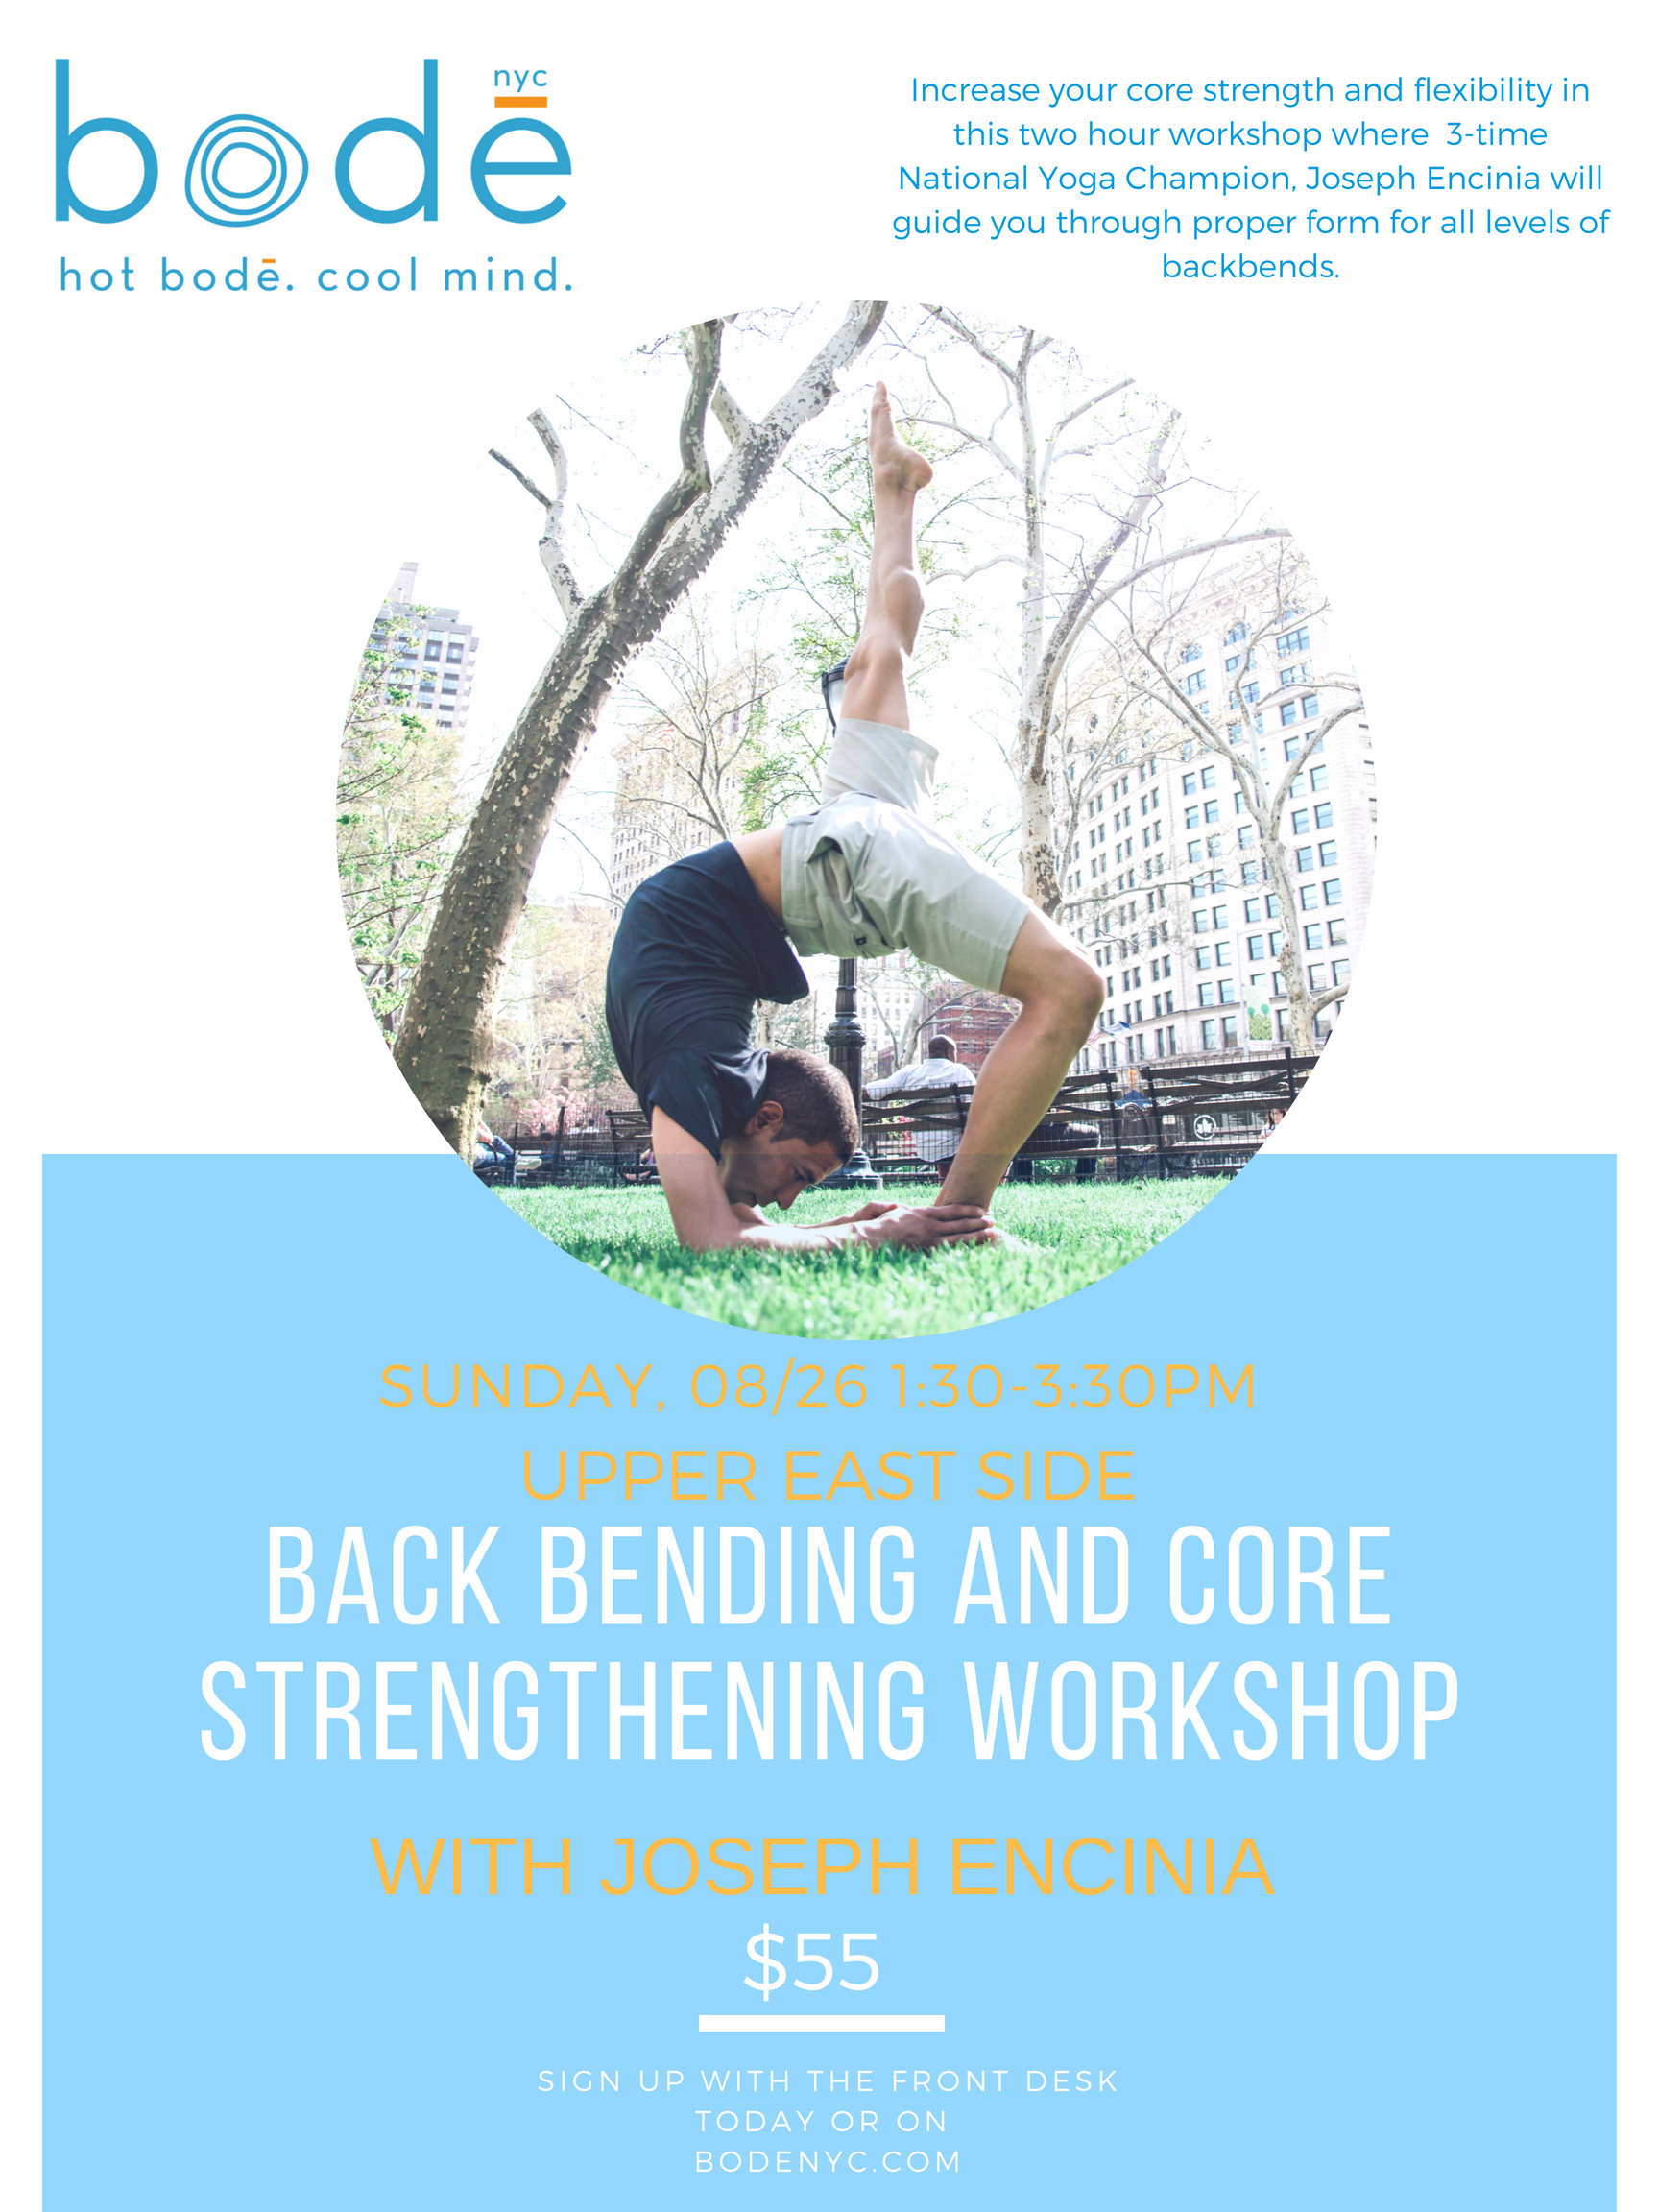 New York City   August 26, 2018   A Backward Bending and Core Strengthening Workshop